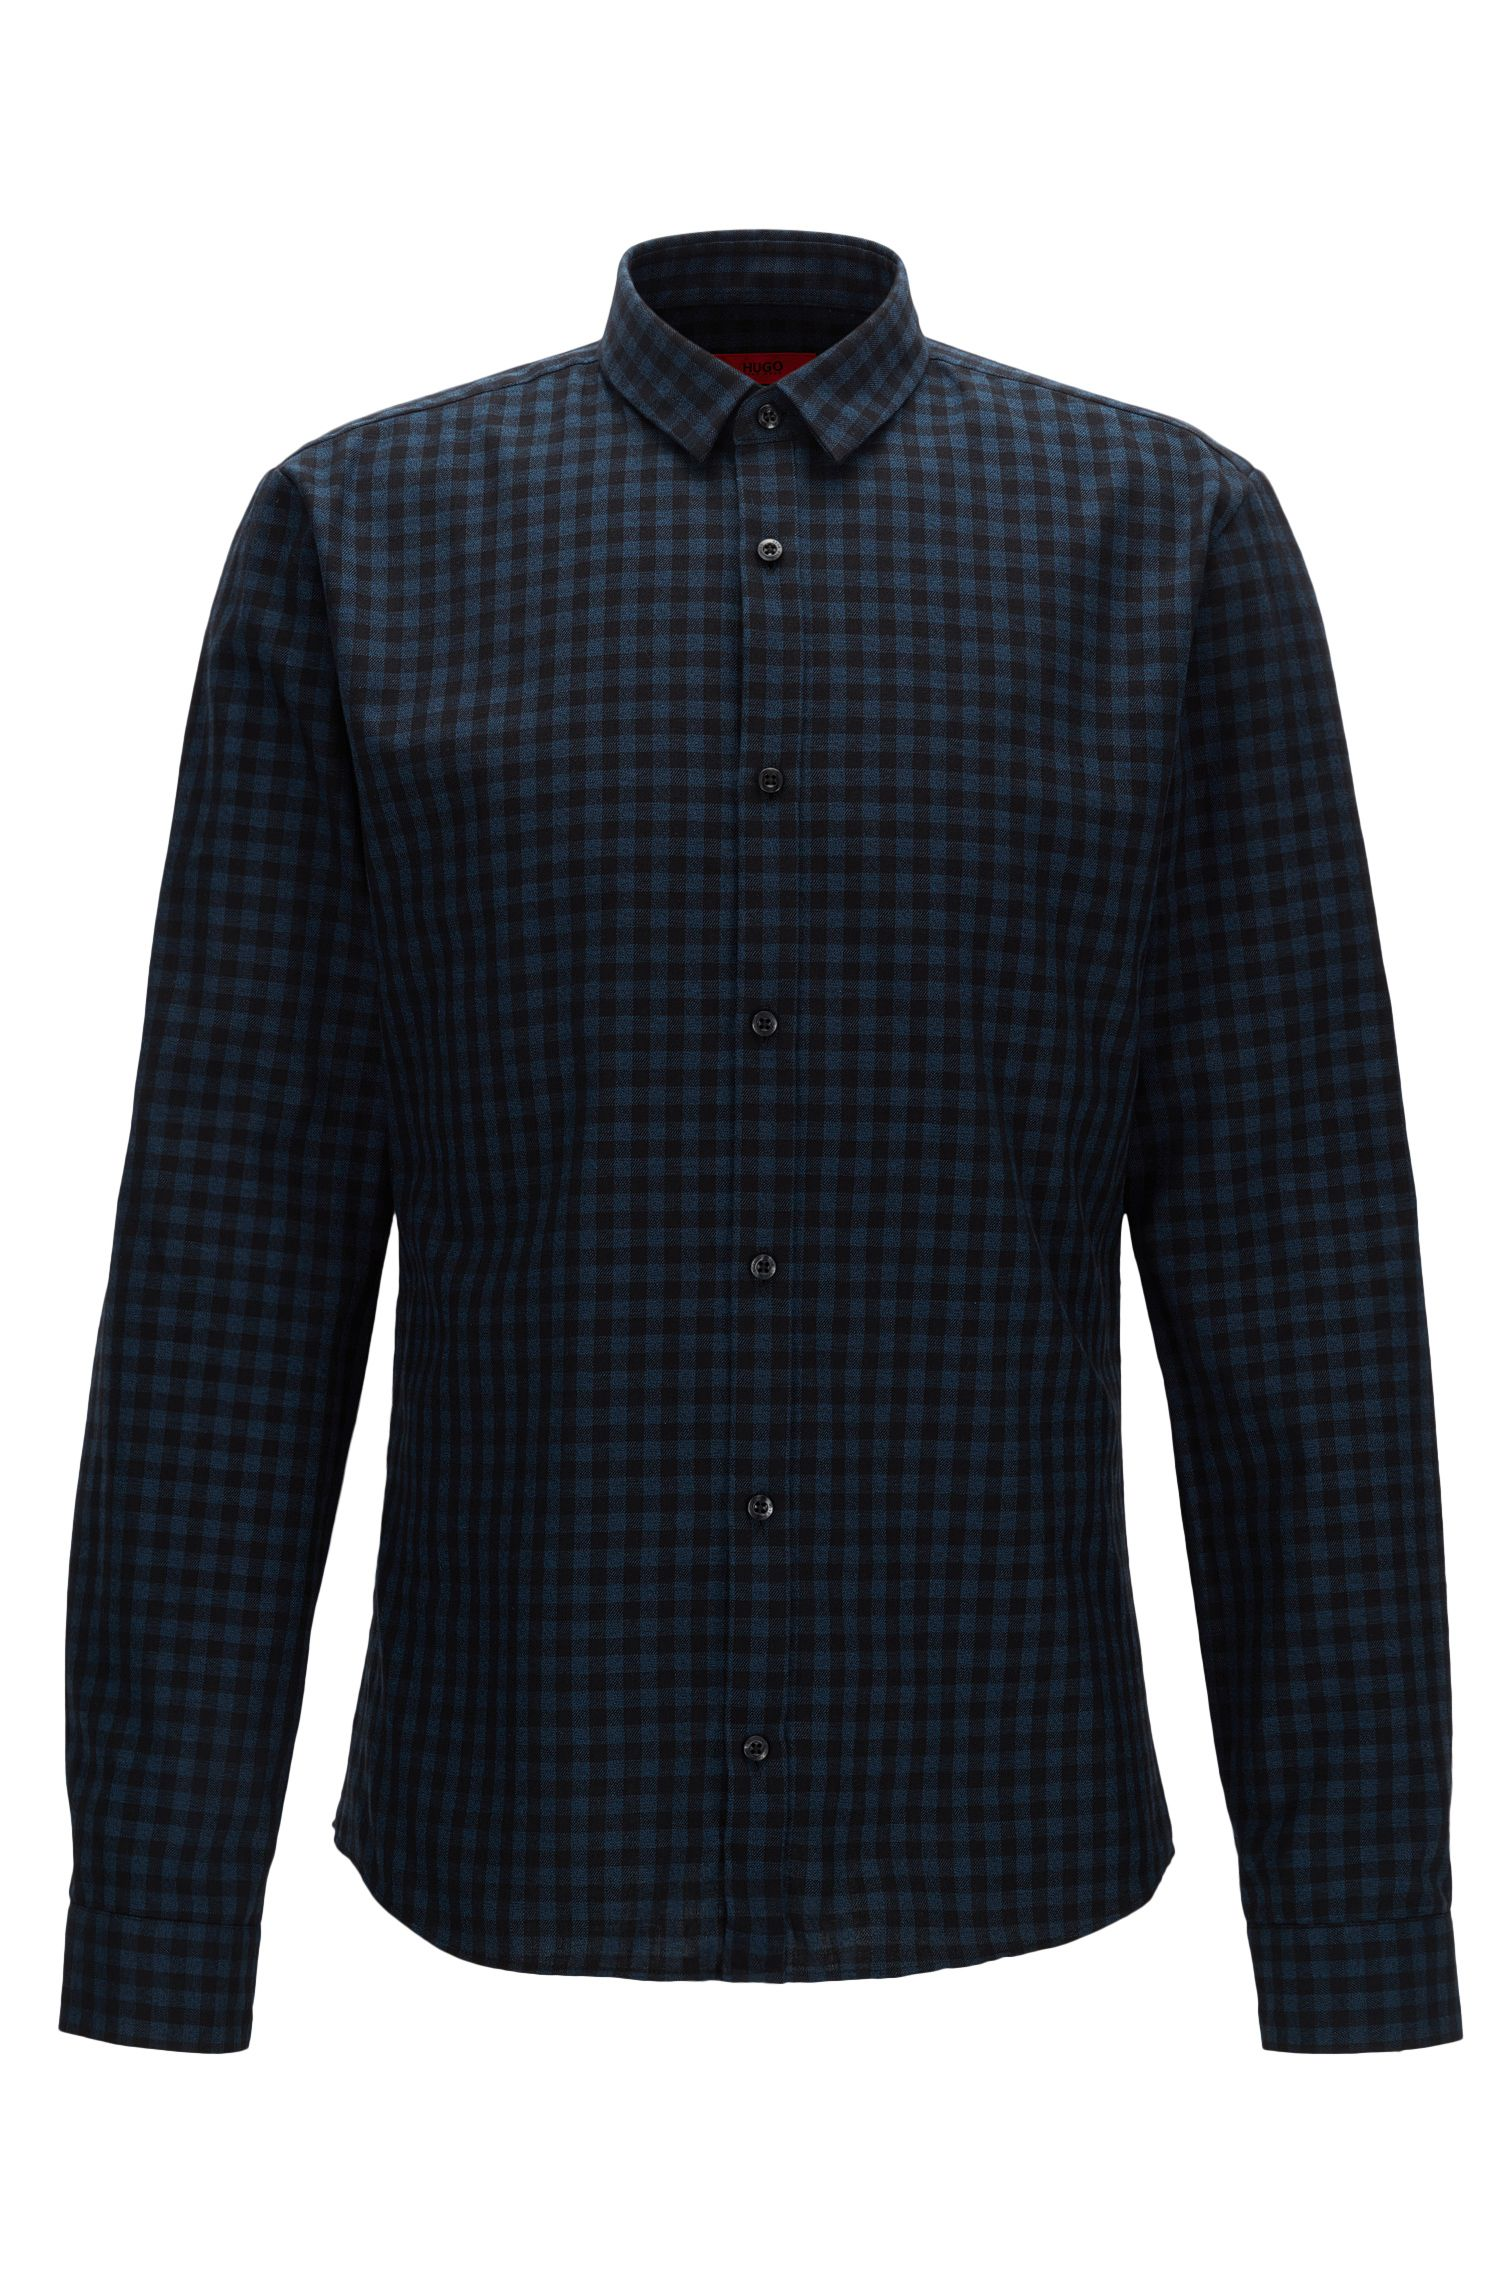 'Ero' | Extra Slim Fit, Gingham Cotton Button Down Shirt